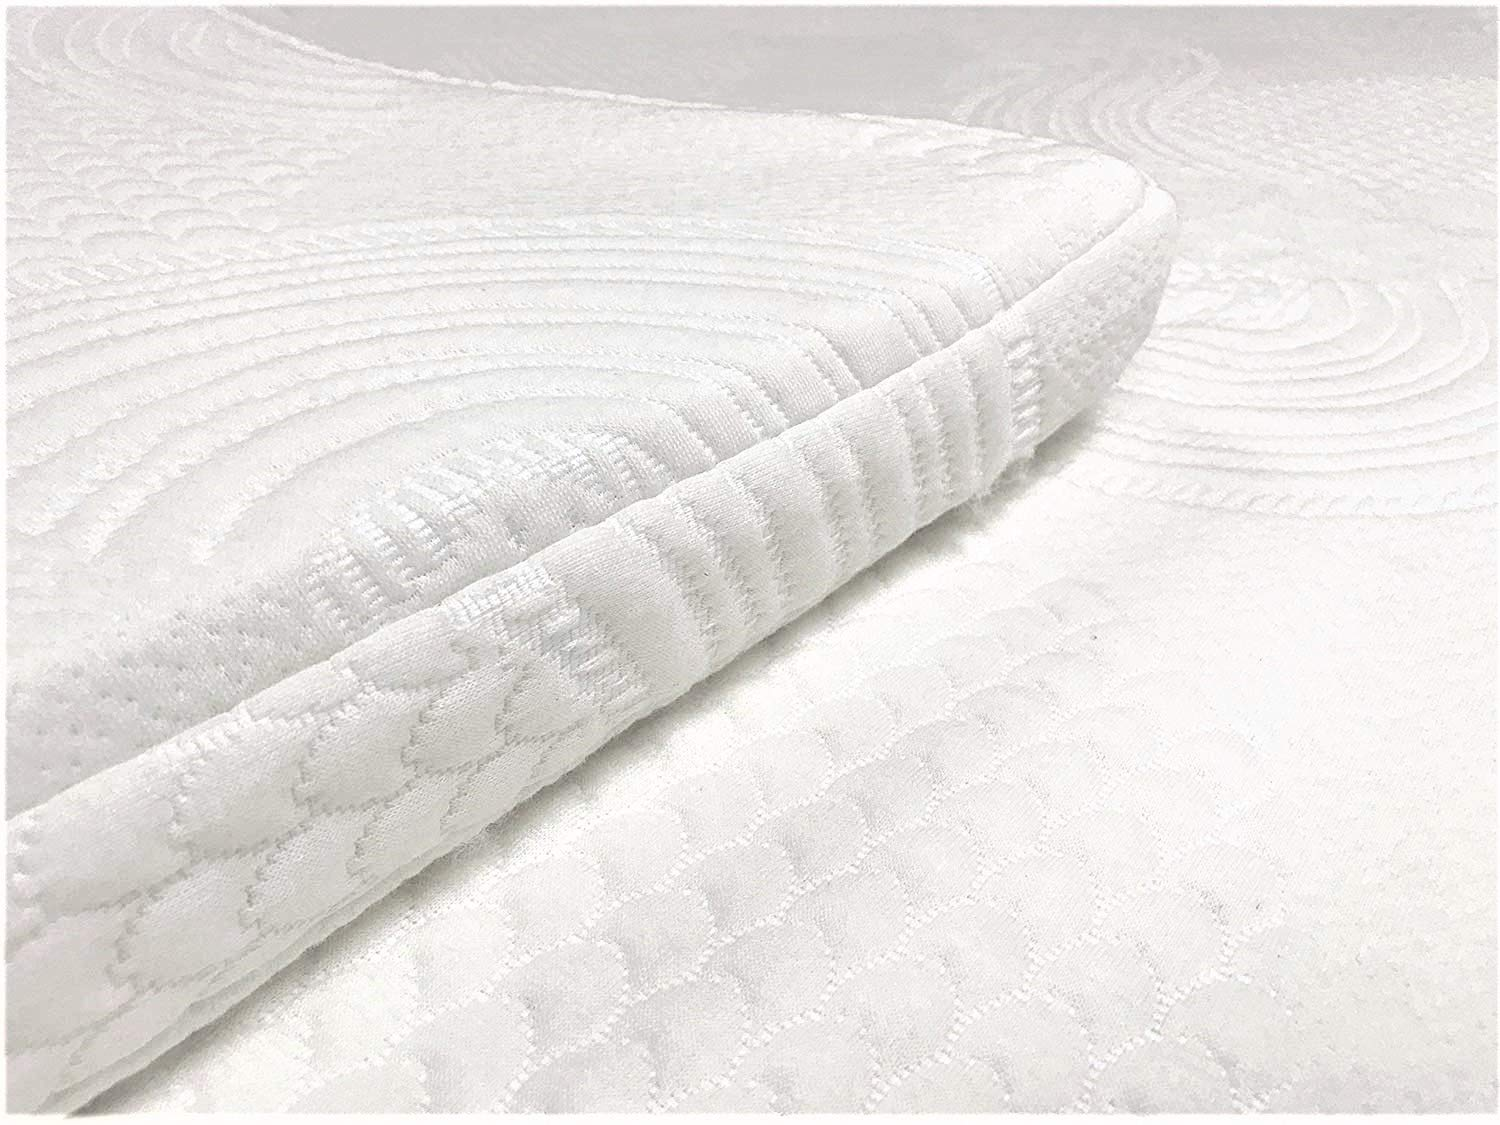 Organic Latex Supreme Mattress Topper (GOLS Certified), Premium Organic Cotton Covering